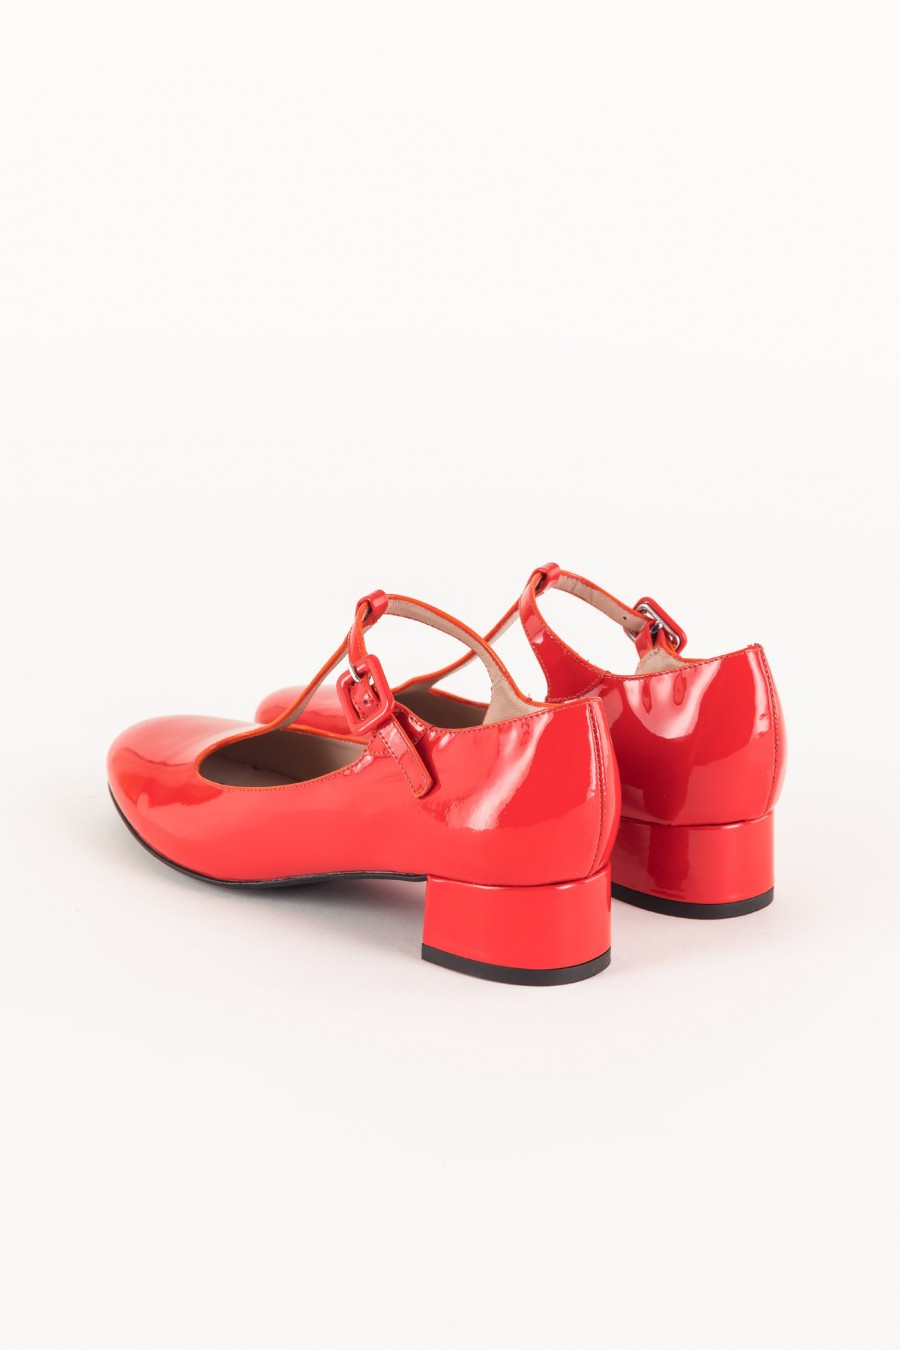 Red flats with t strap